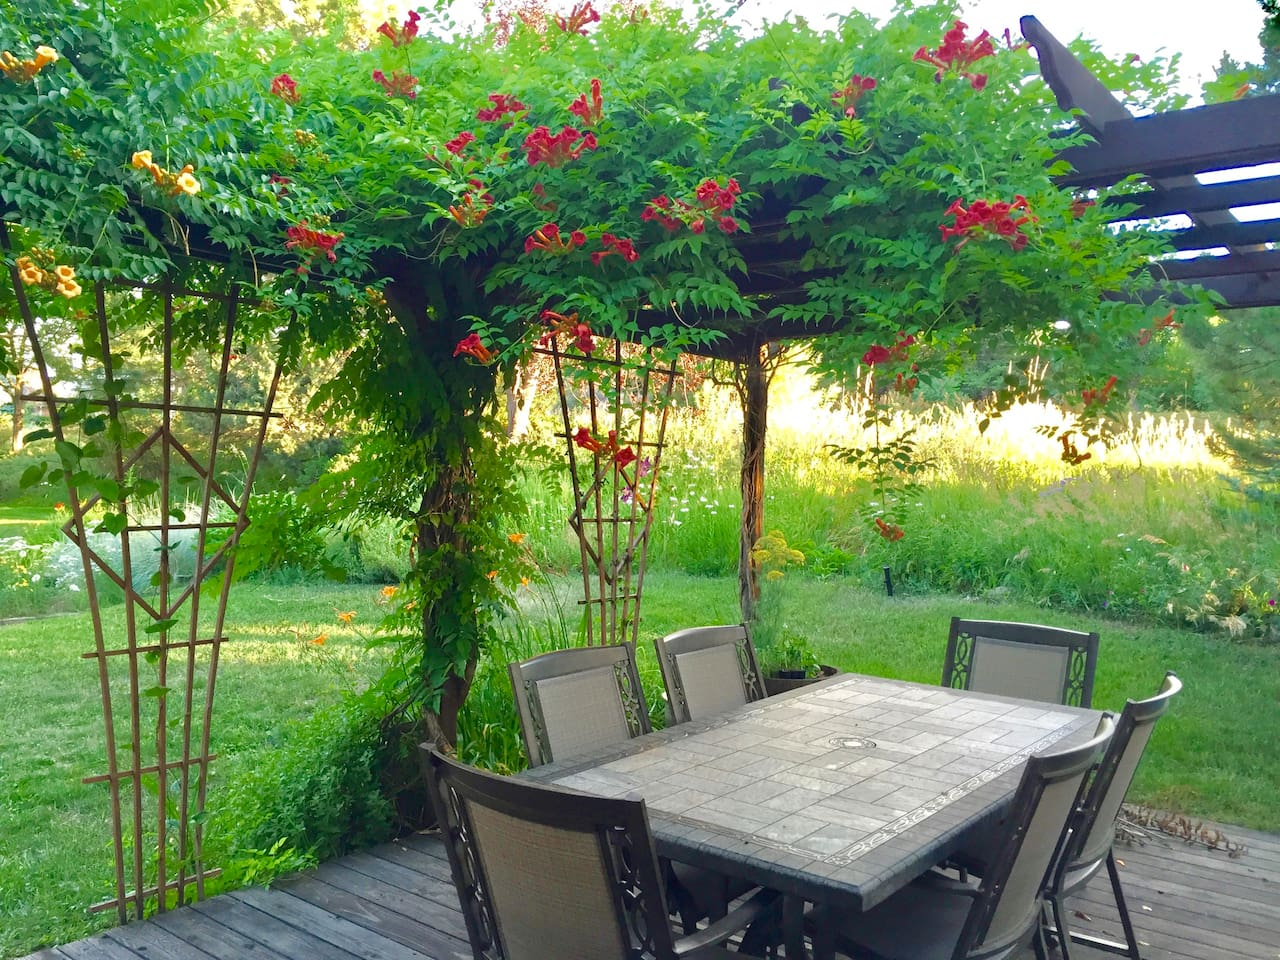 This gorgeous patio has seen a lot of family meals - different flowers grow on the pergola and along the hillside Spring through Fall.